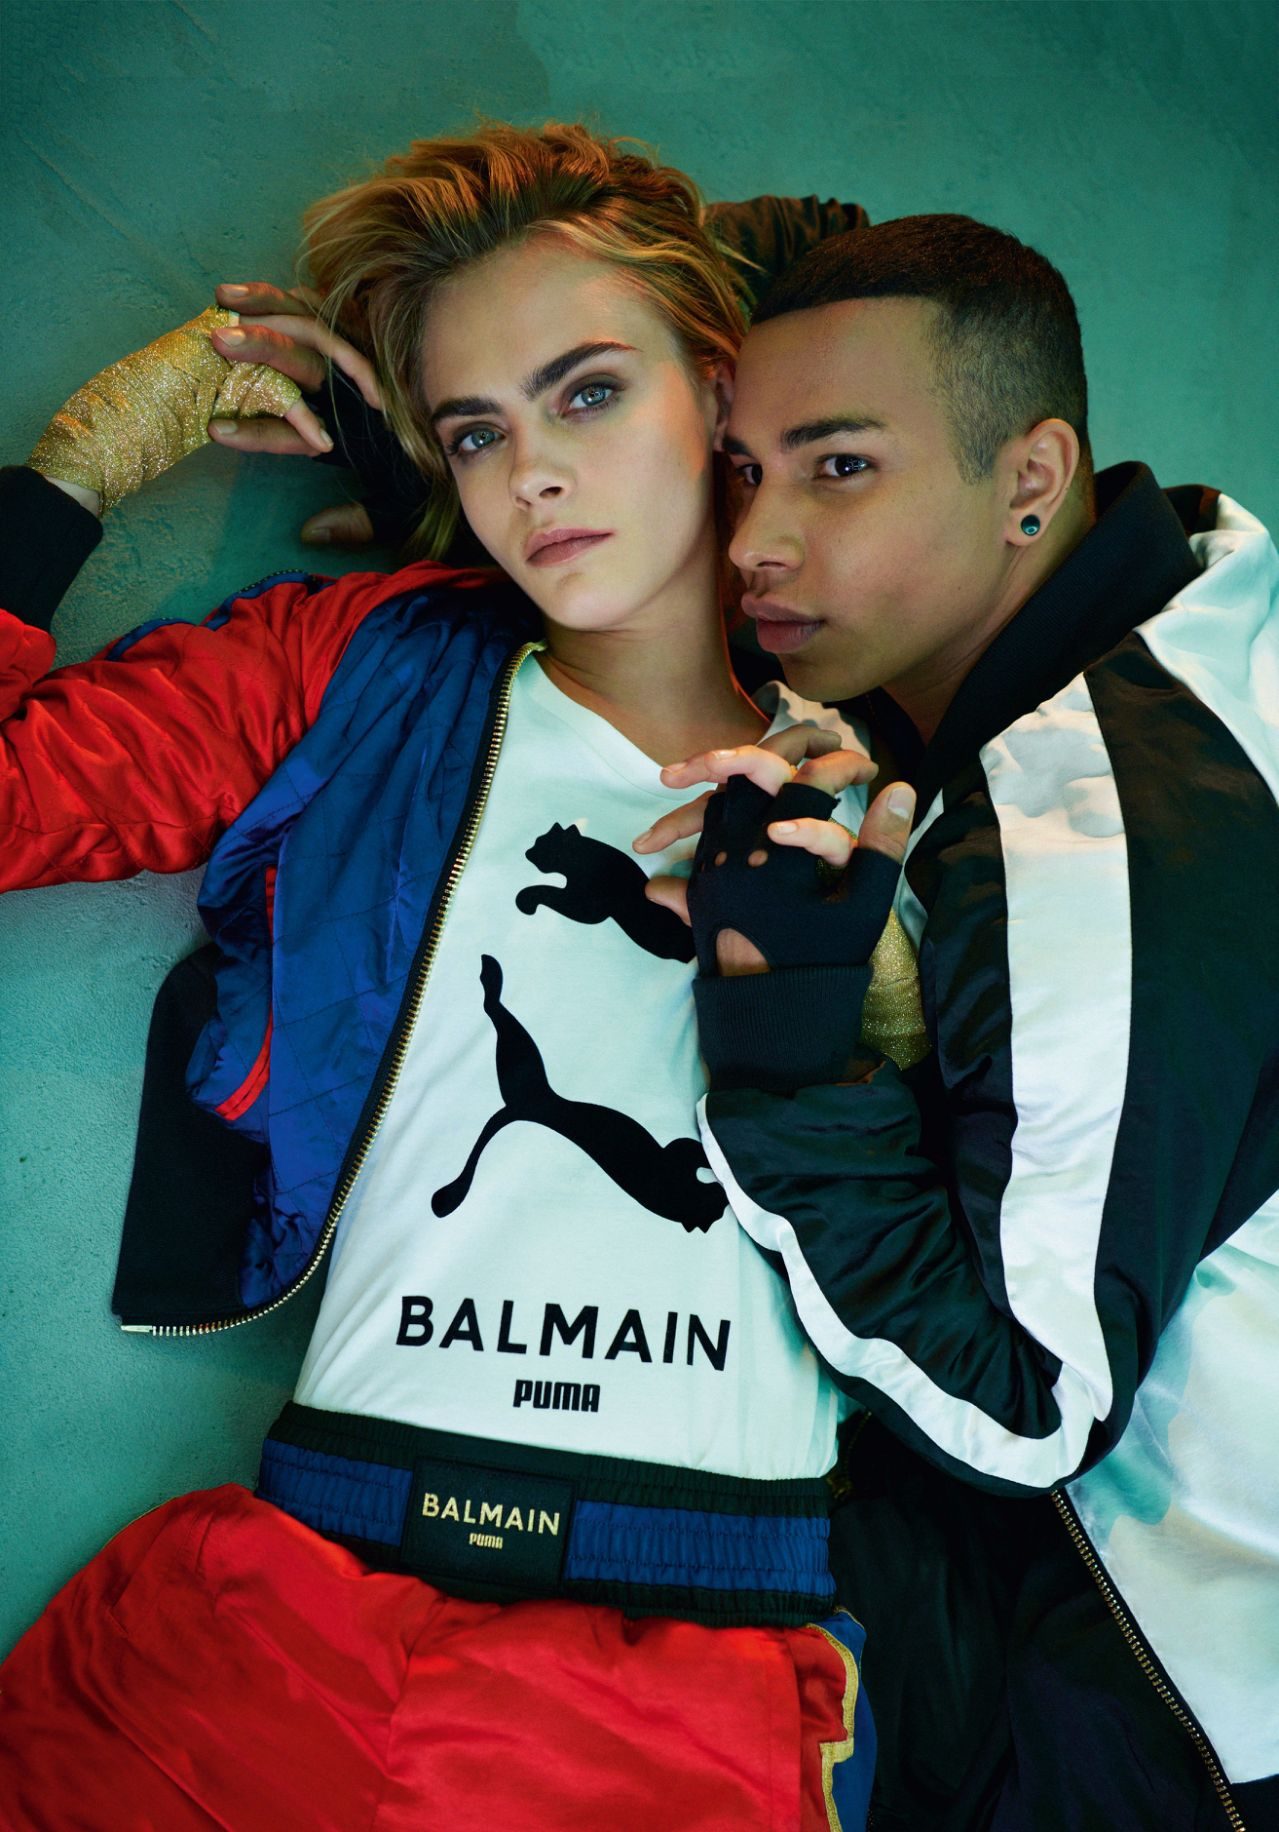 Cara Delevingne hợp tác với Olivier Rousteing trong BST mới